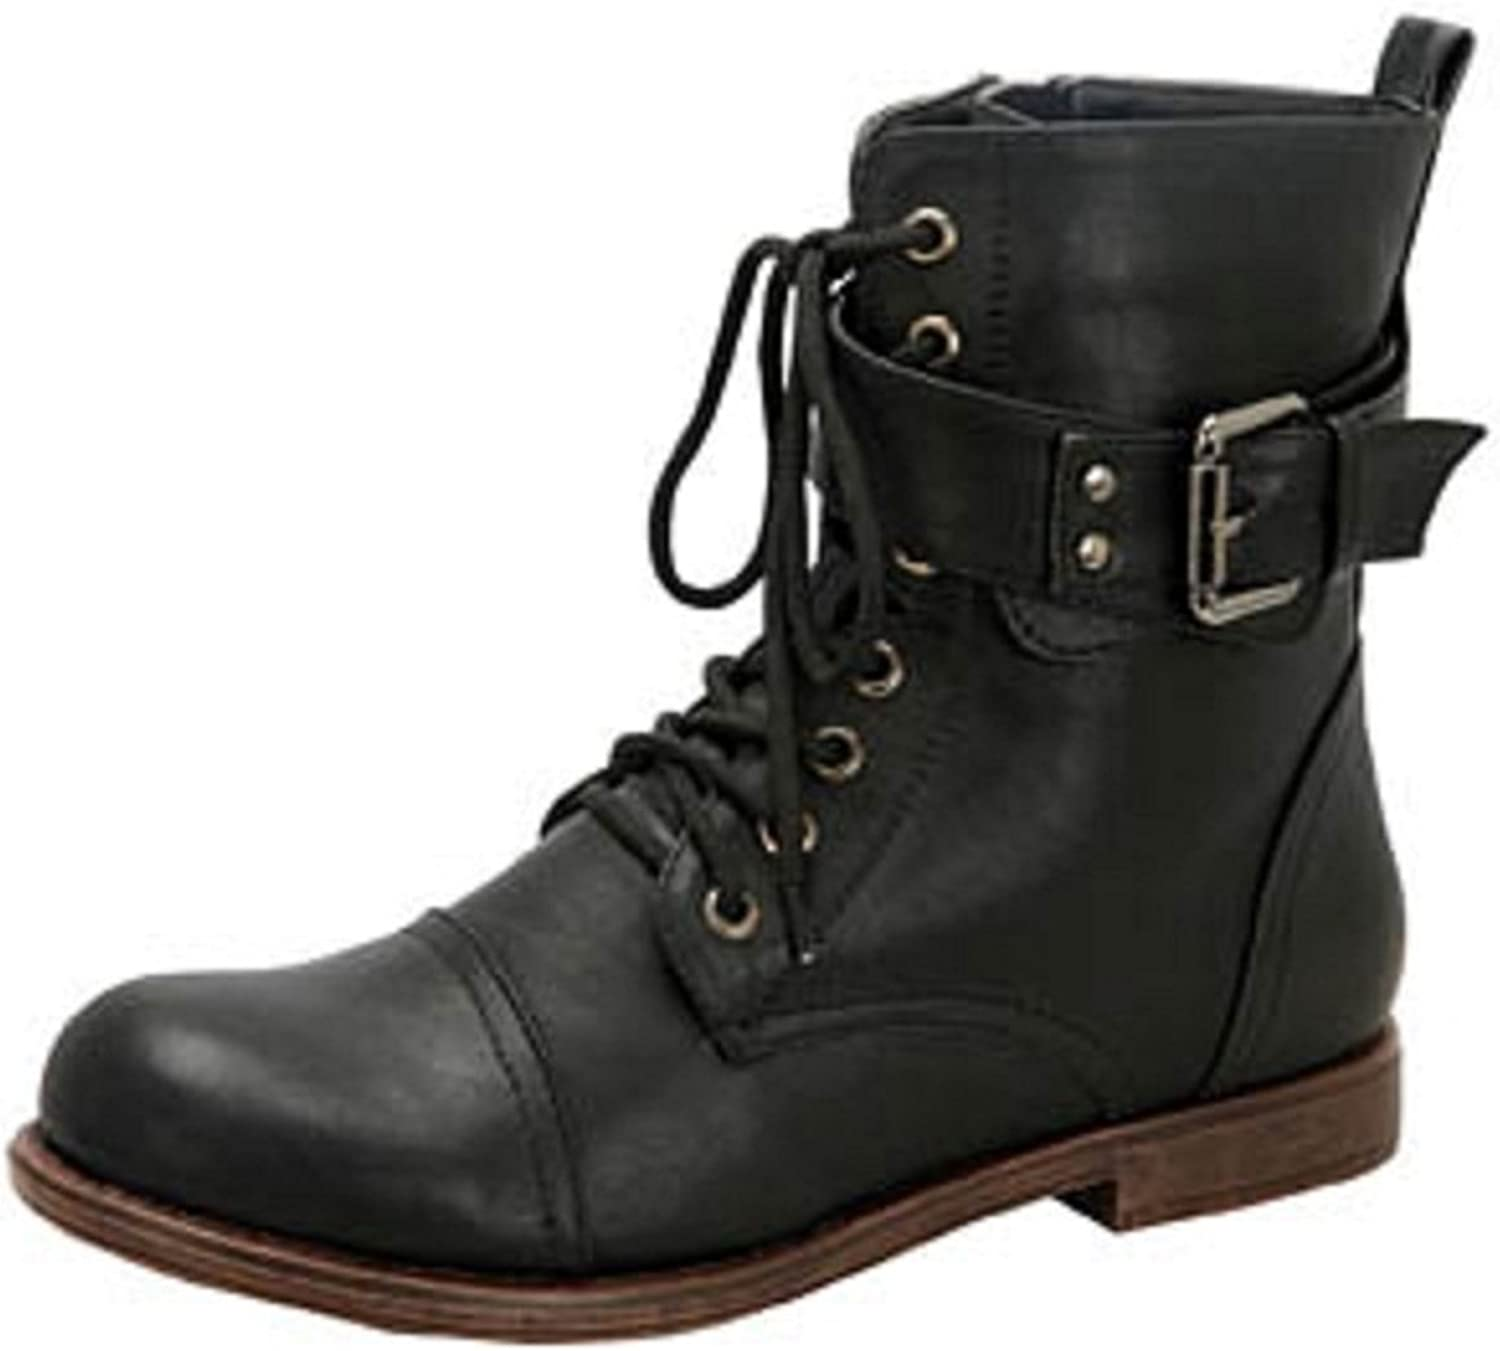 De-Blossom-Collection Cana-4 Women's Lace-up Leatherette Combat Boots